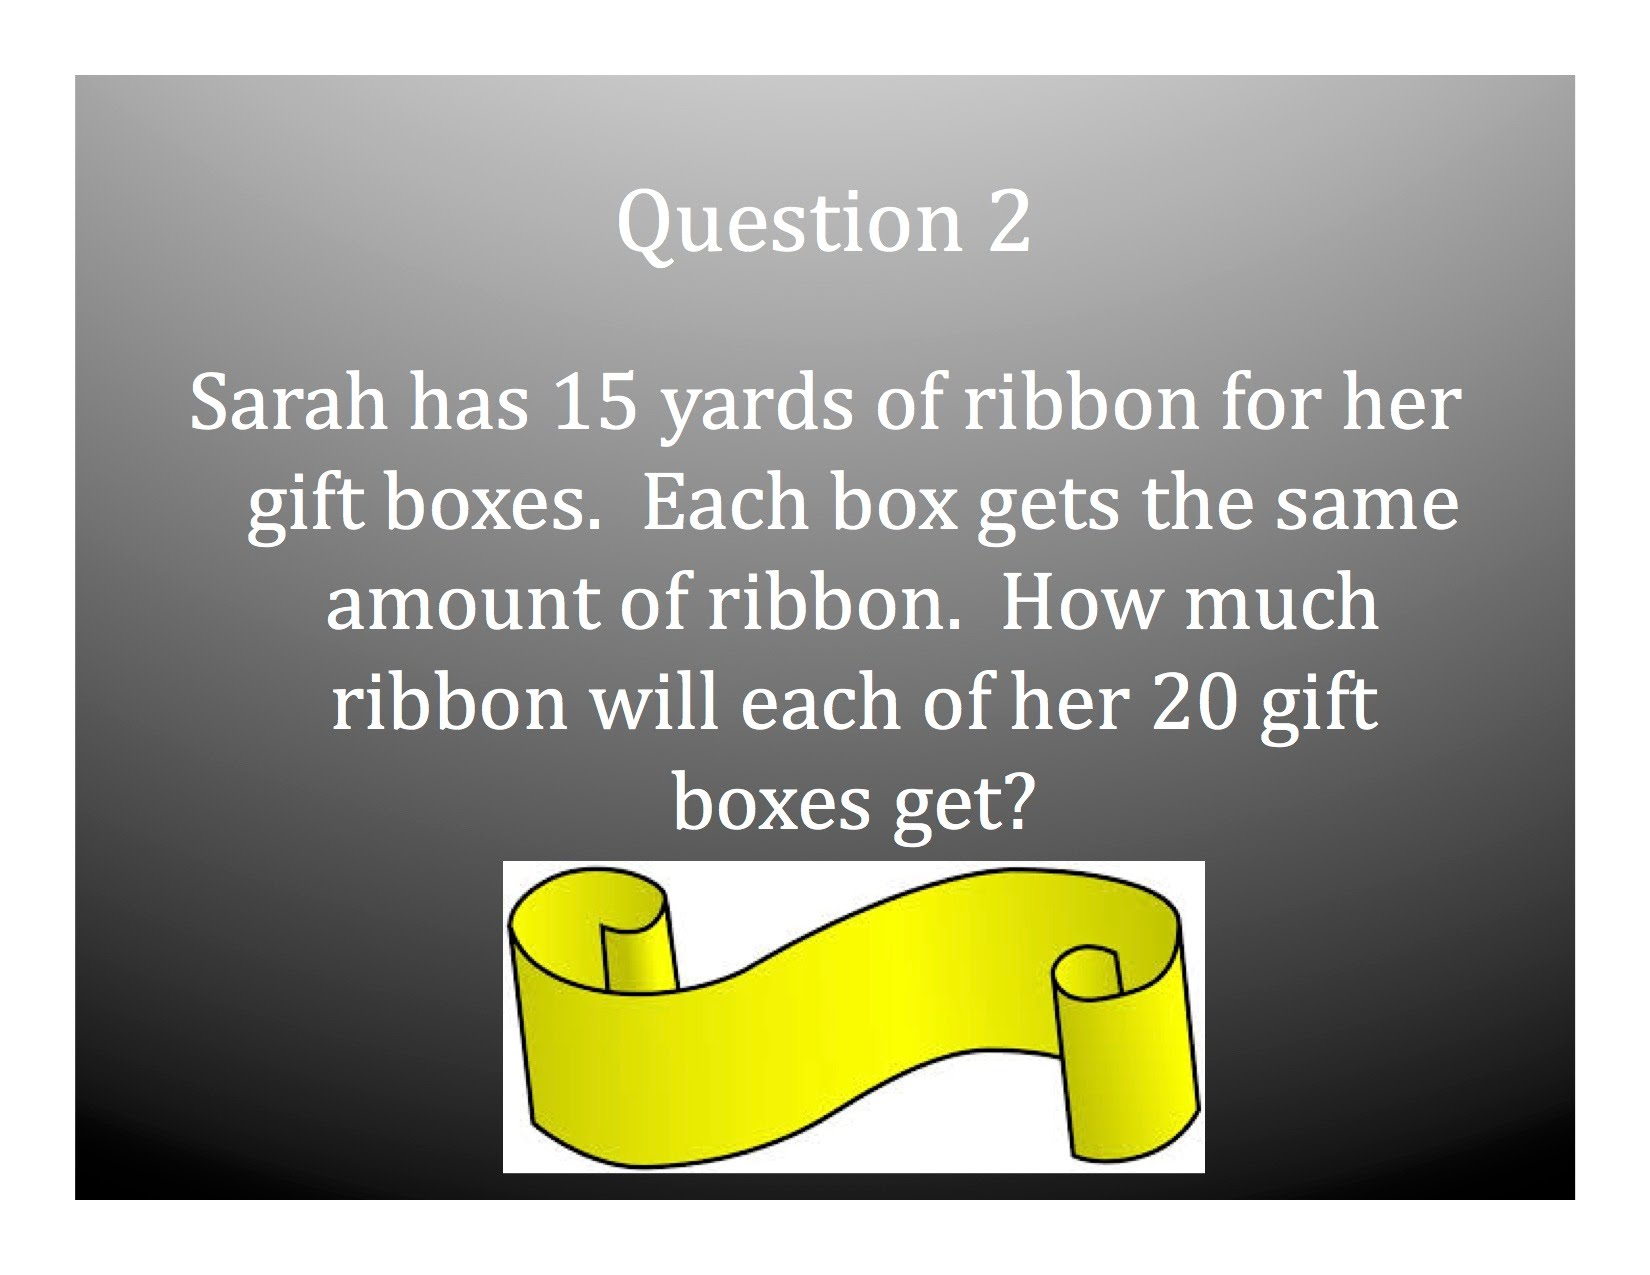 Word Problems and Analysis - Jessica Marquez